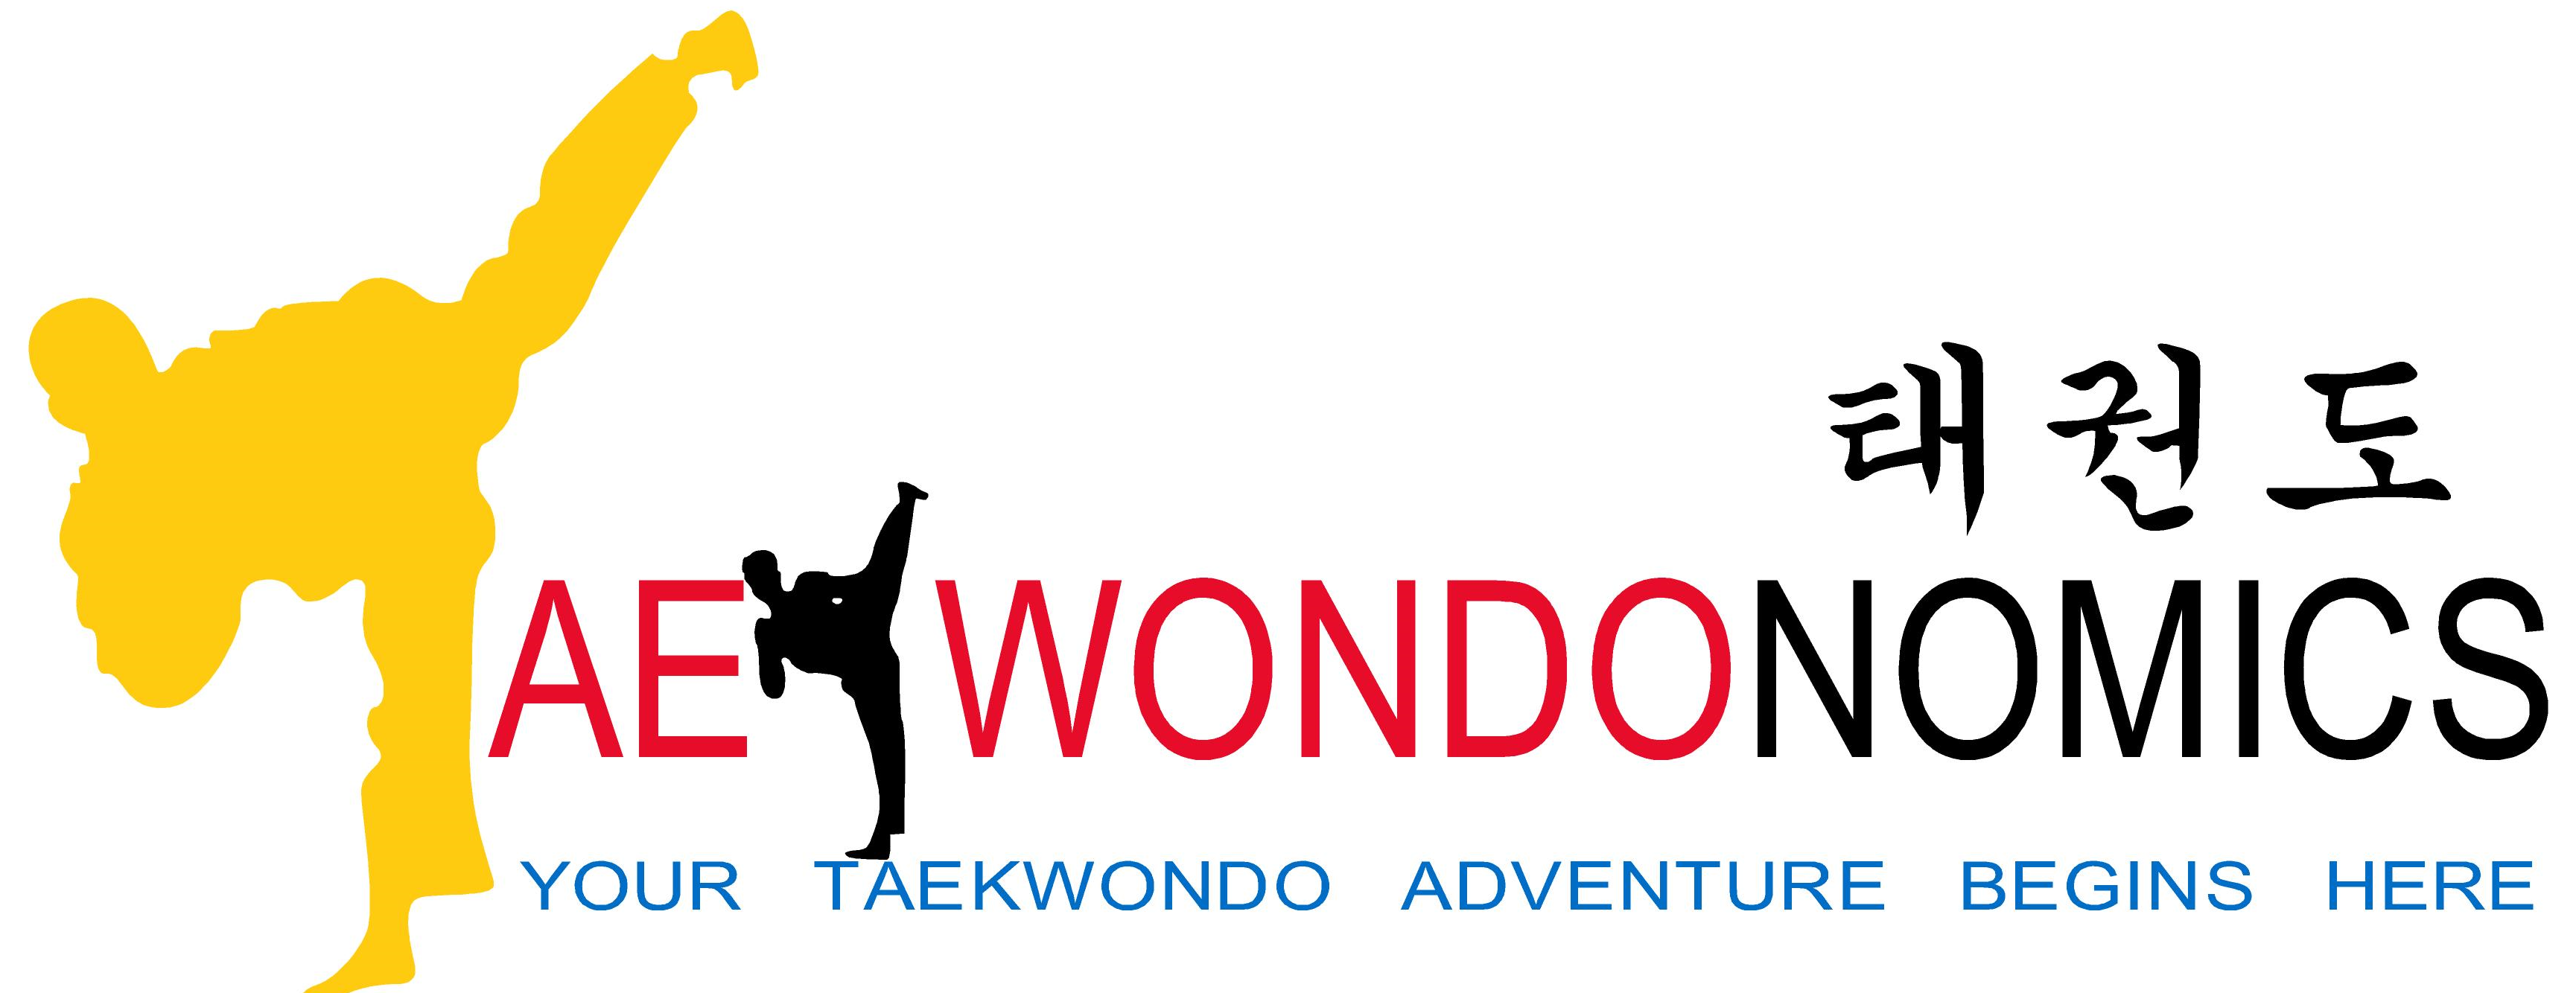 Singapore Taekwondo Federation- Taekwondo classes Singapore